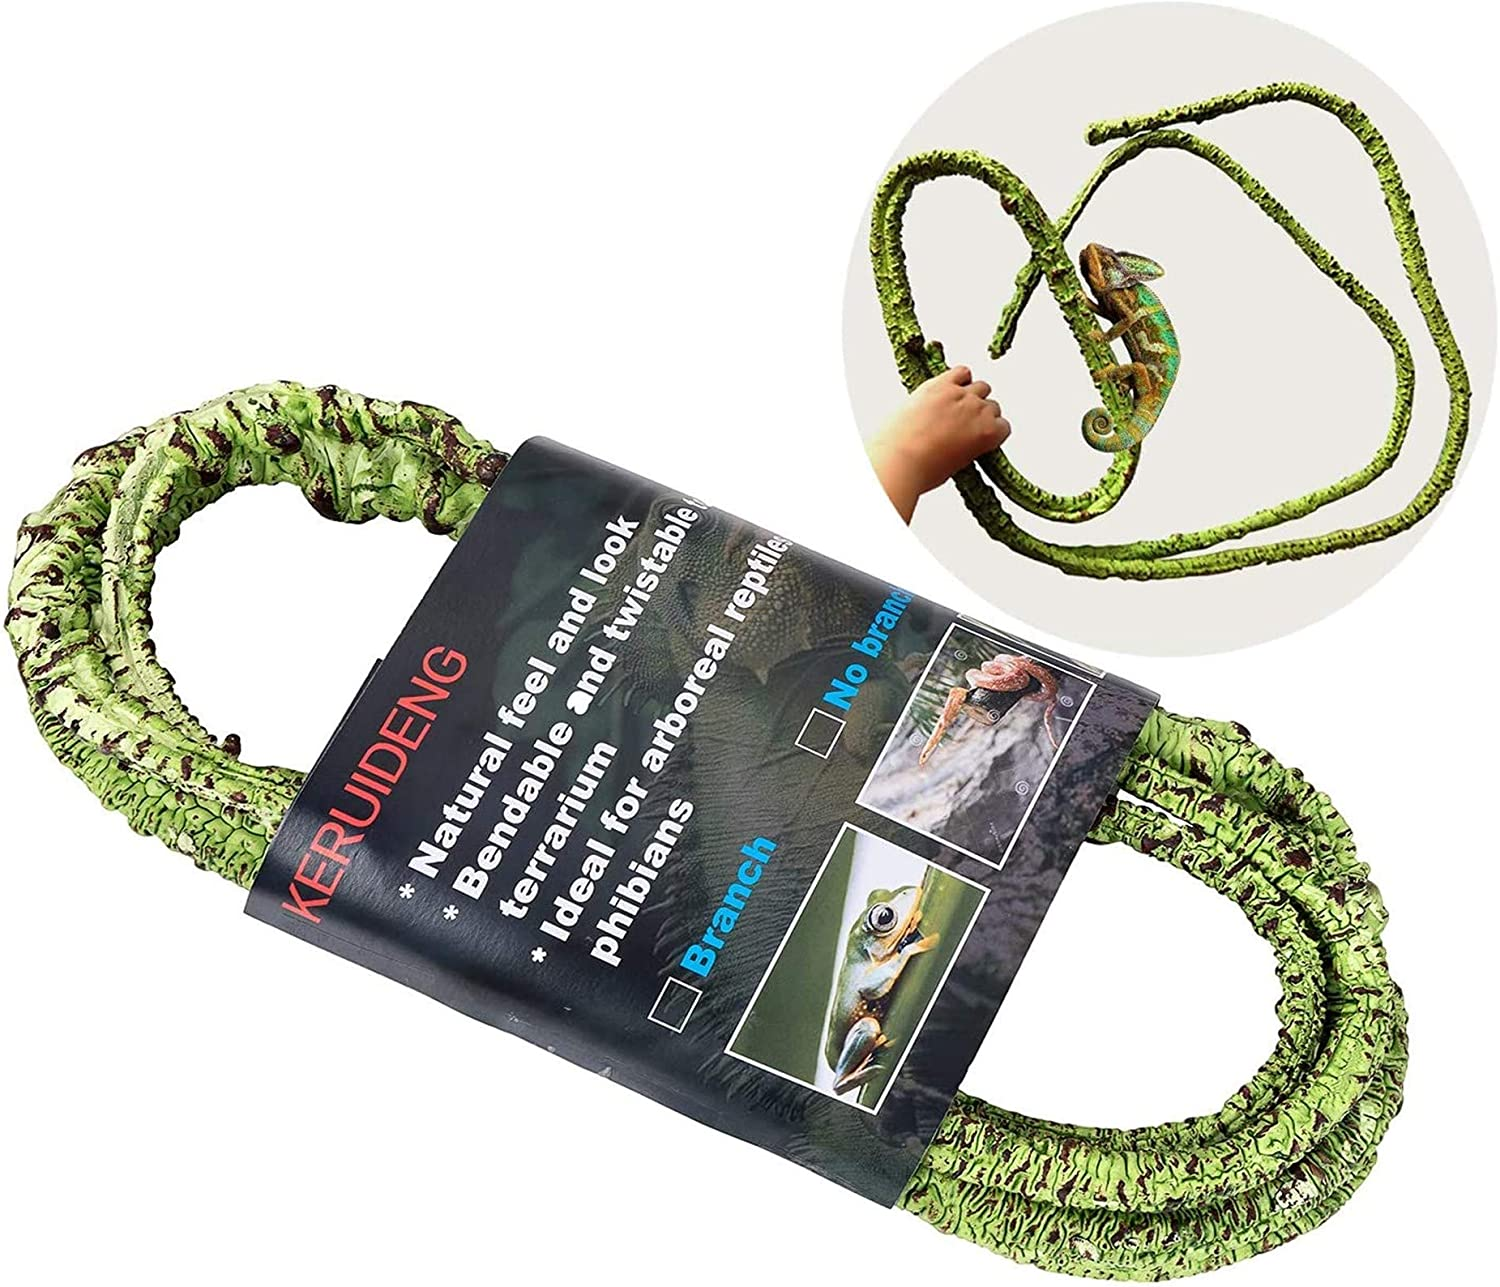 KERUIDENG Branched Reptile Vines Decor, Jungle Climber Long Vines Habitat Decor for Chameleon Climbing Lizards Snakes and More Reptiles